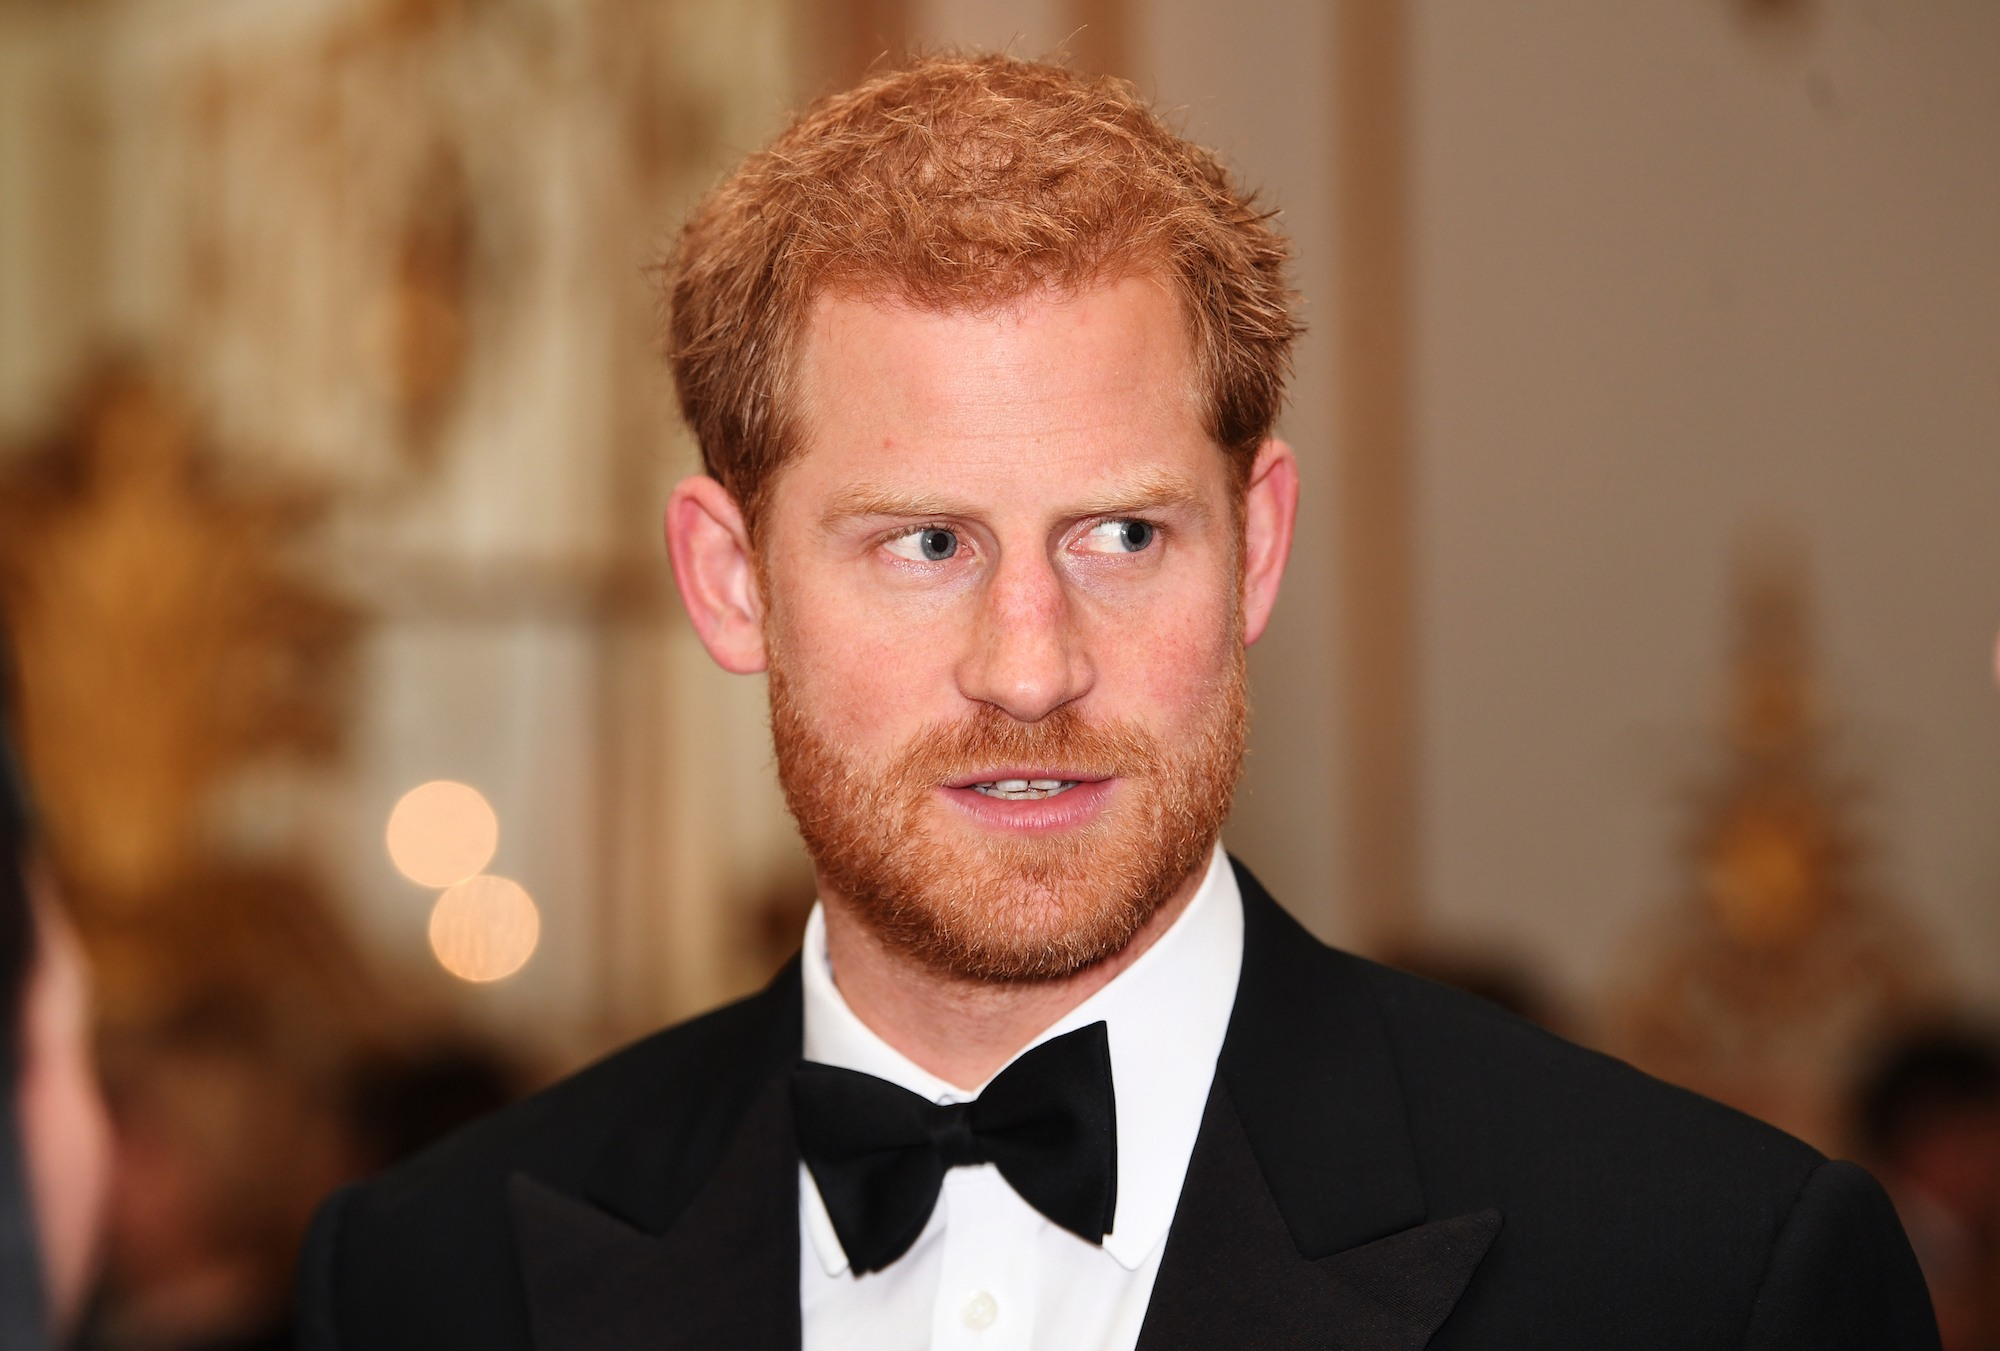 How Does Prince Harry Make His Money? His Royal Income, Net Worth, and More – The Cheat Sheet